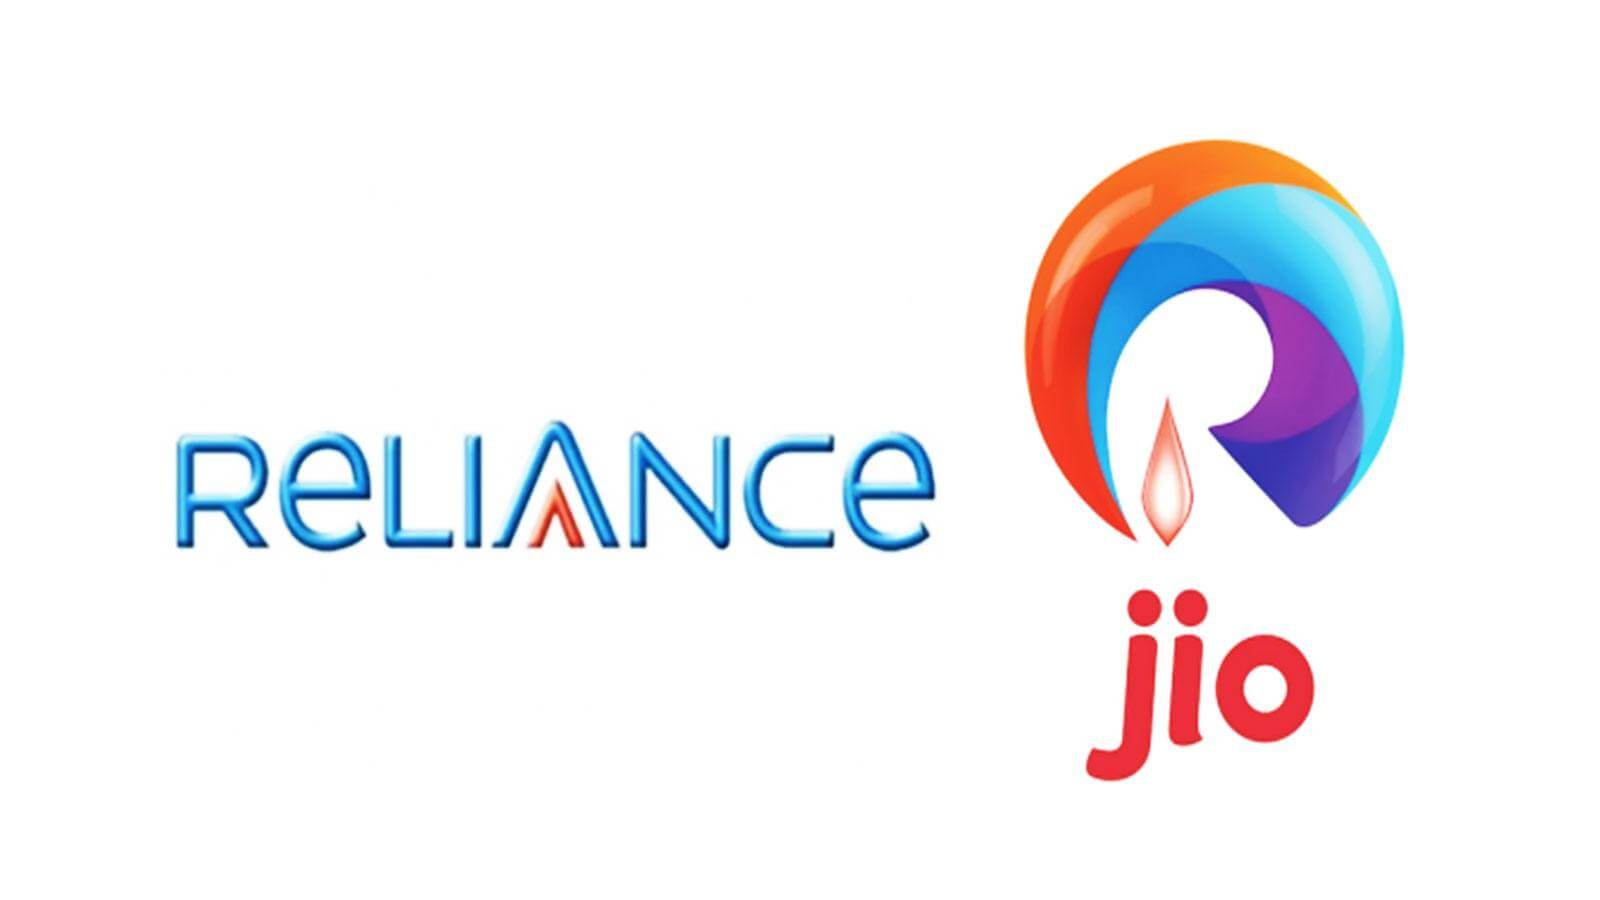 Reliance Jio may launch its 4G services on August 15